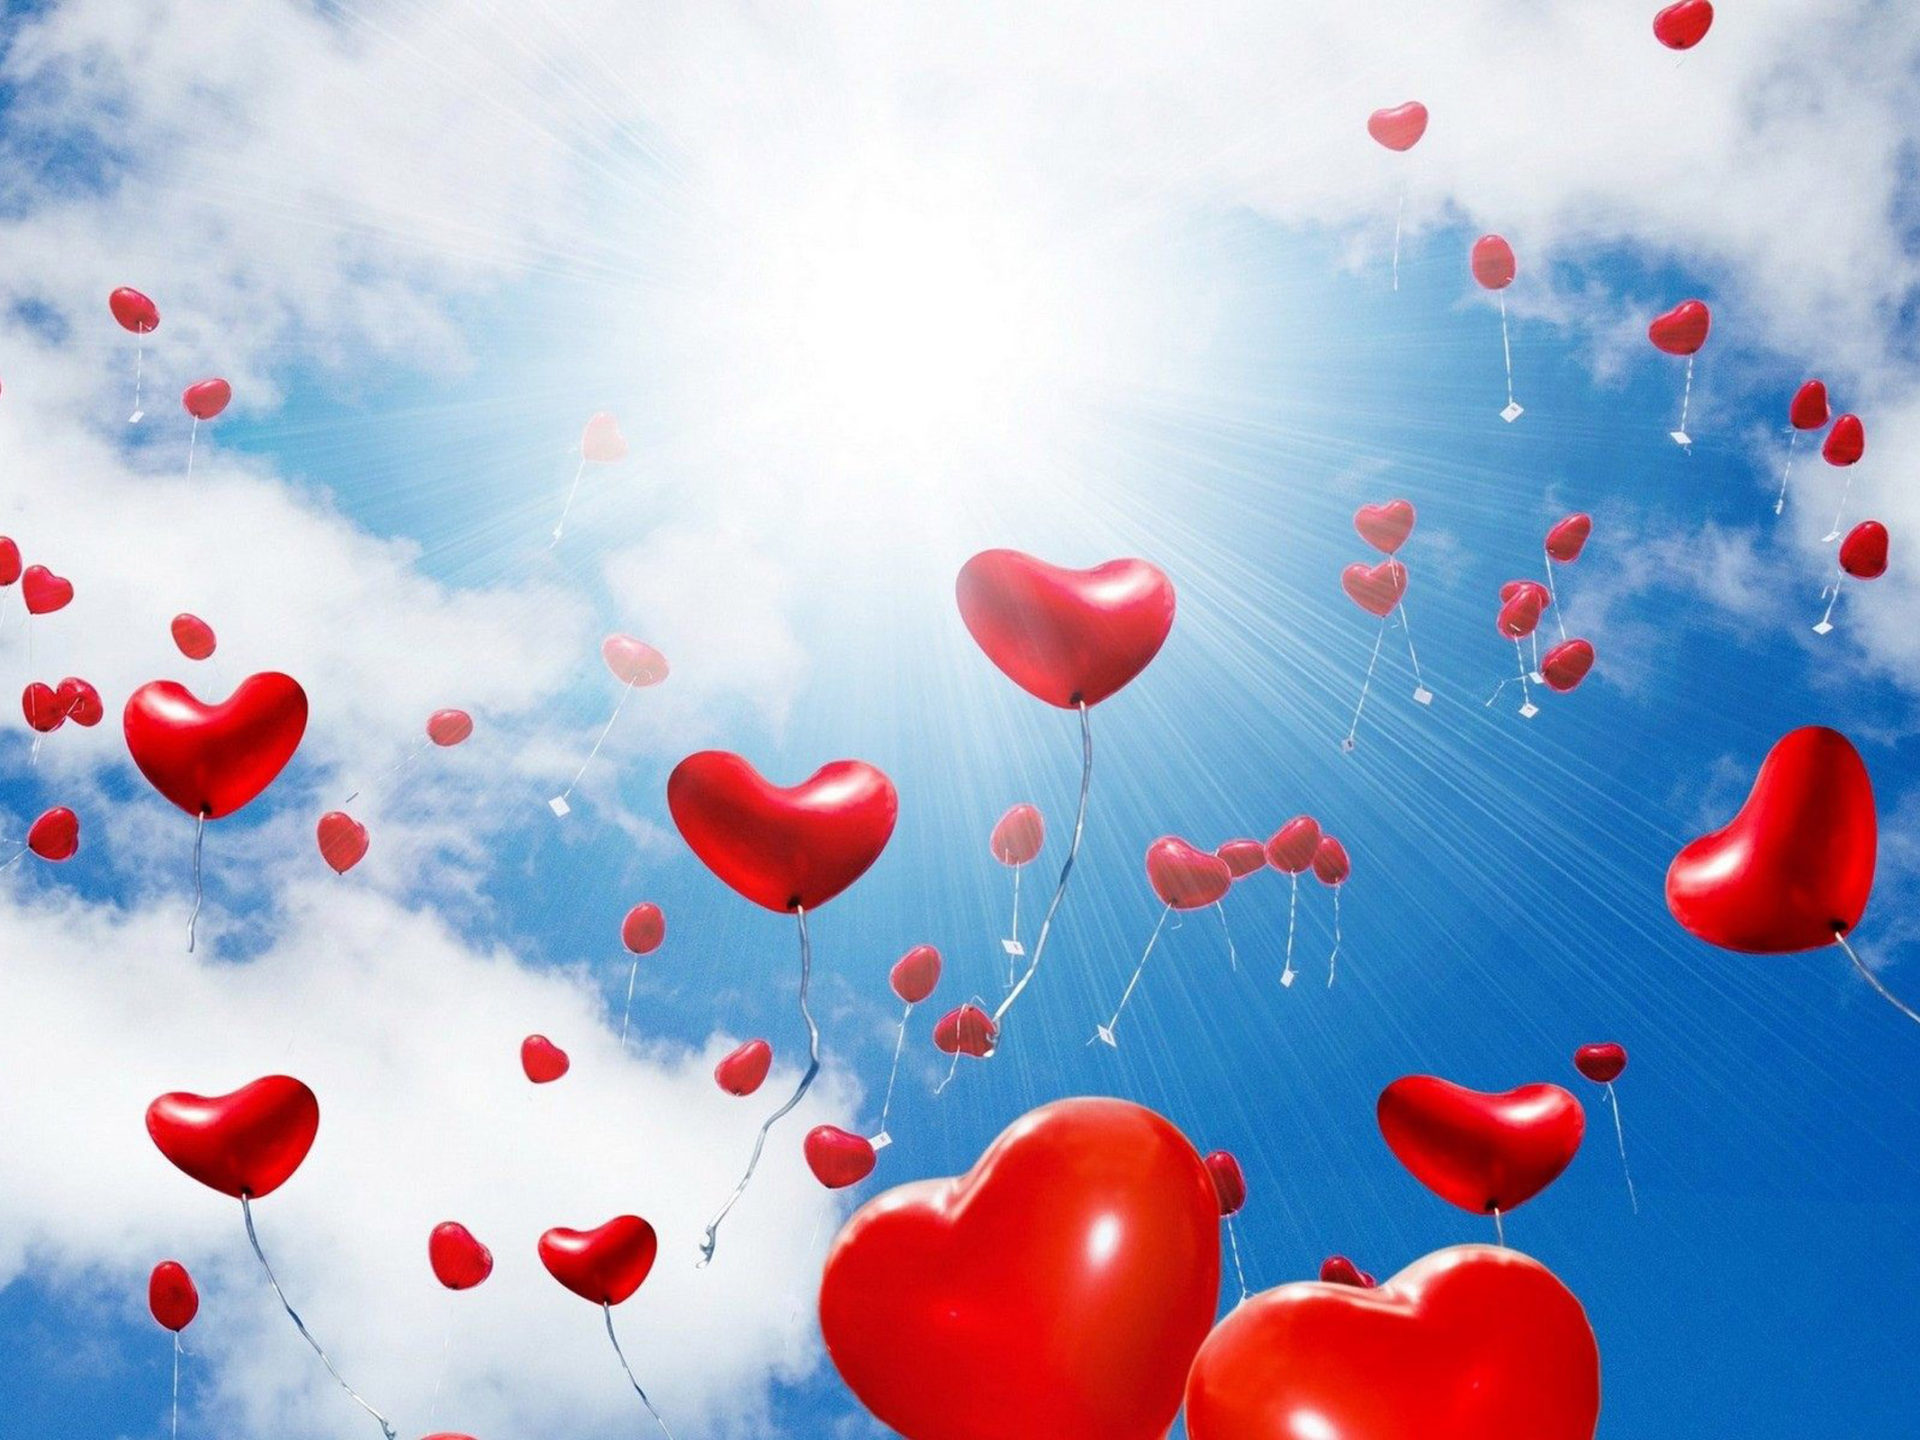 Love Couple Wallpaper For Iphone 5 Red Balloons In The Shape Of A Heart Sunlight Blue Sky